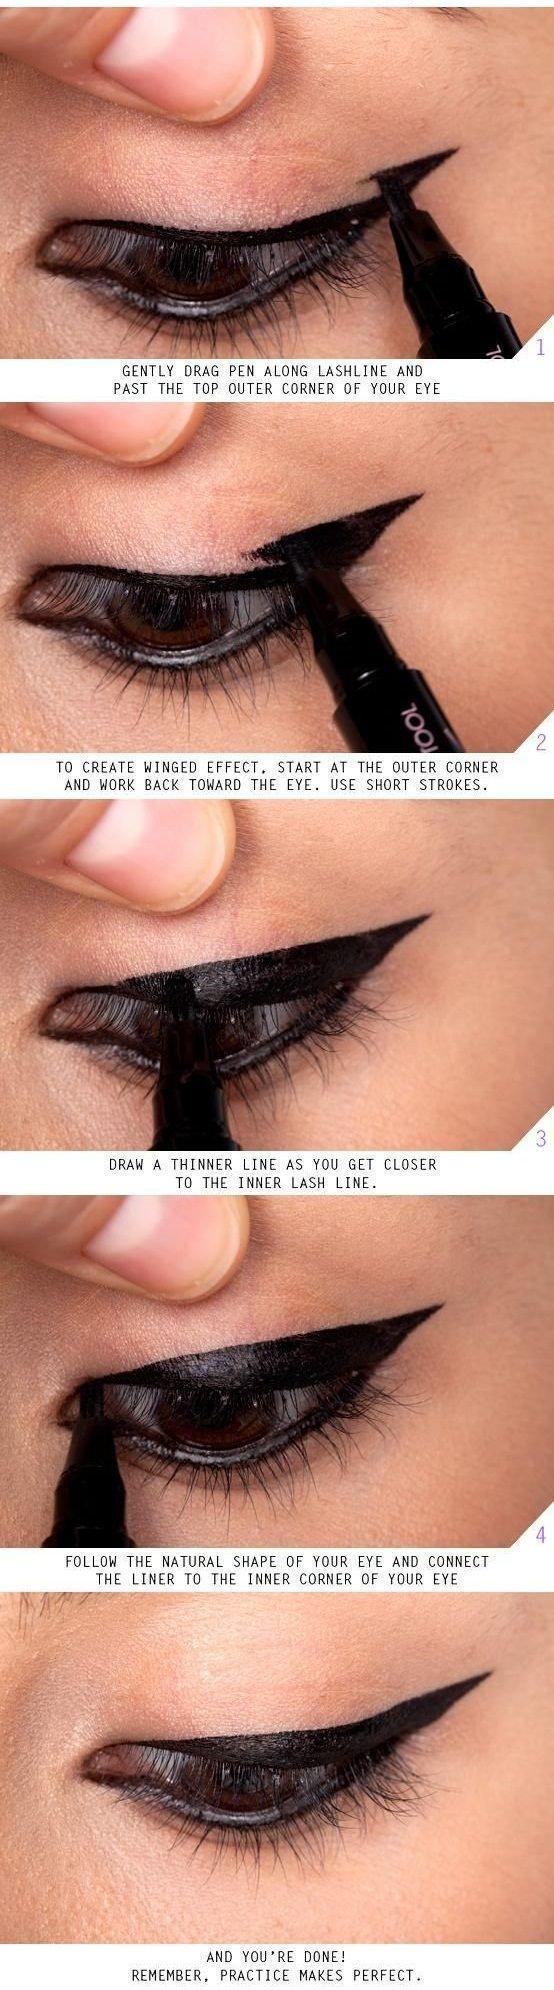 Makeup Tips and Tutorials! Vintage Triple Winged Eyeliner by DIY Ready at http://makeuptutorials.com/makeup-tutorials-17-great-eyeliner-hacks/